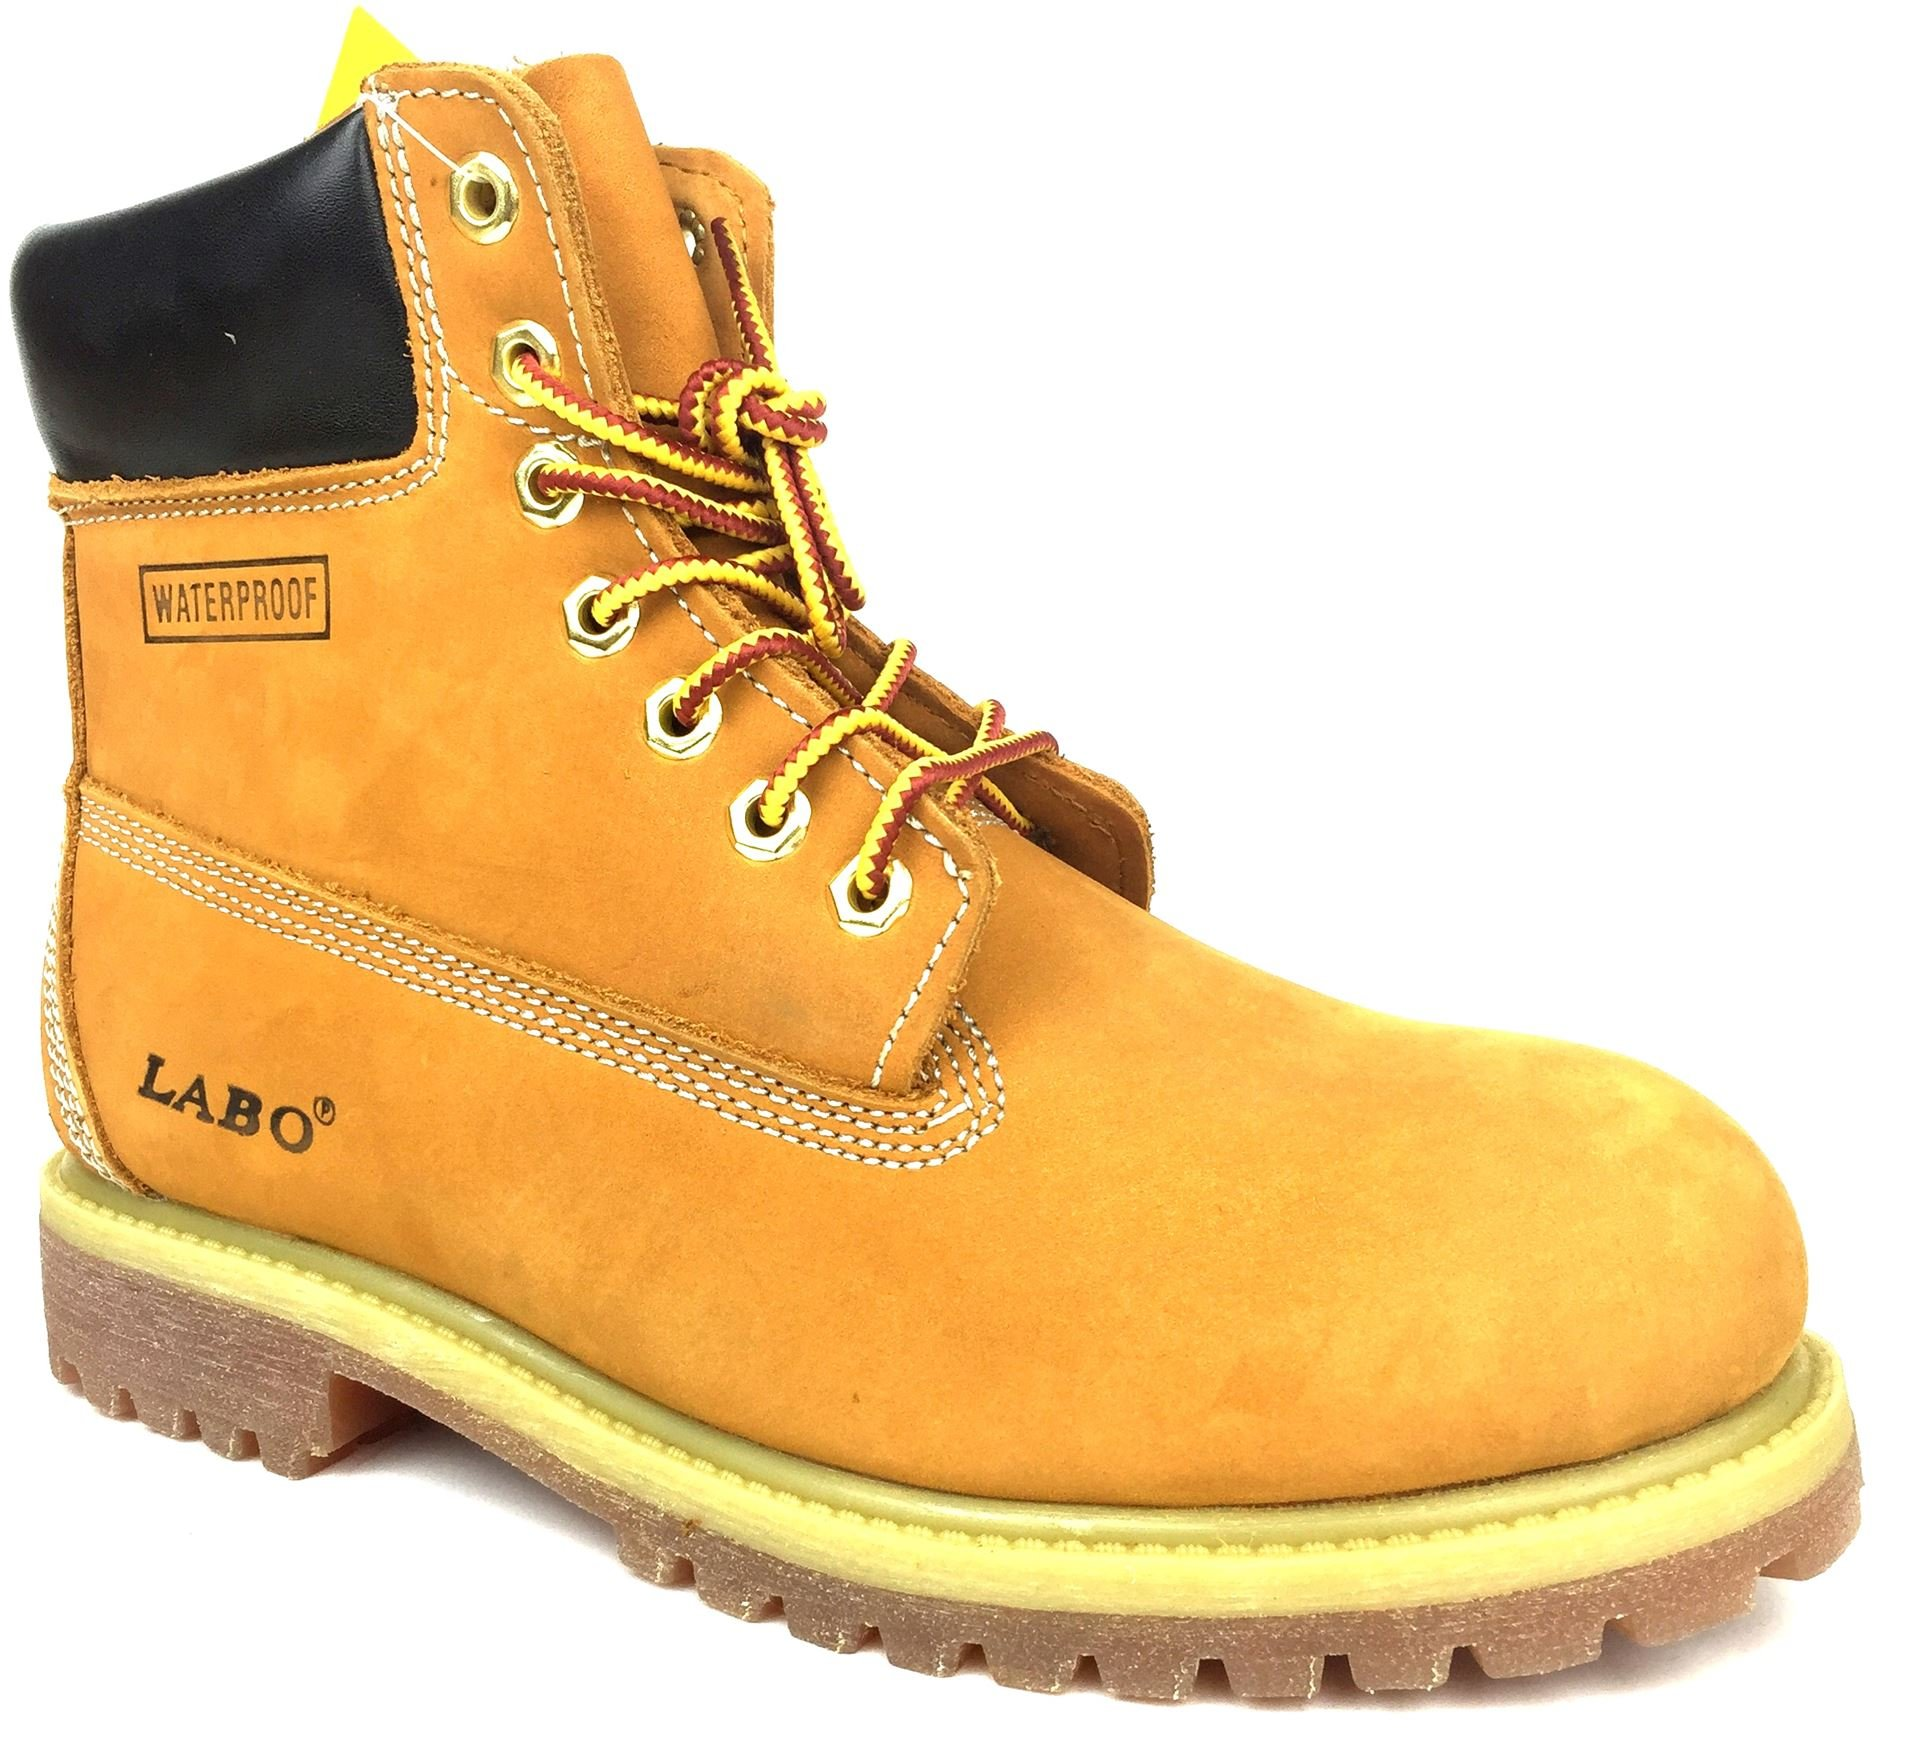 LABO Working Boots - 1061 Tan 8.5